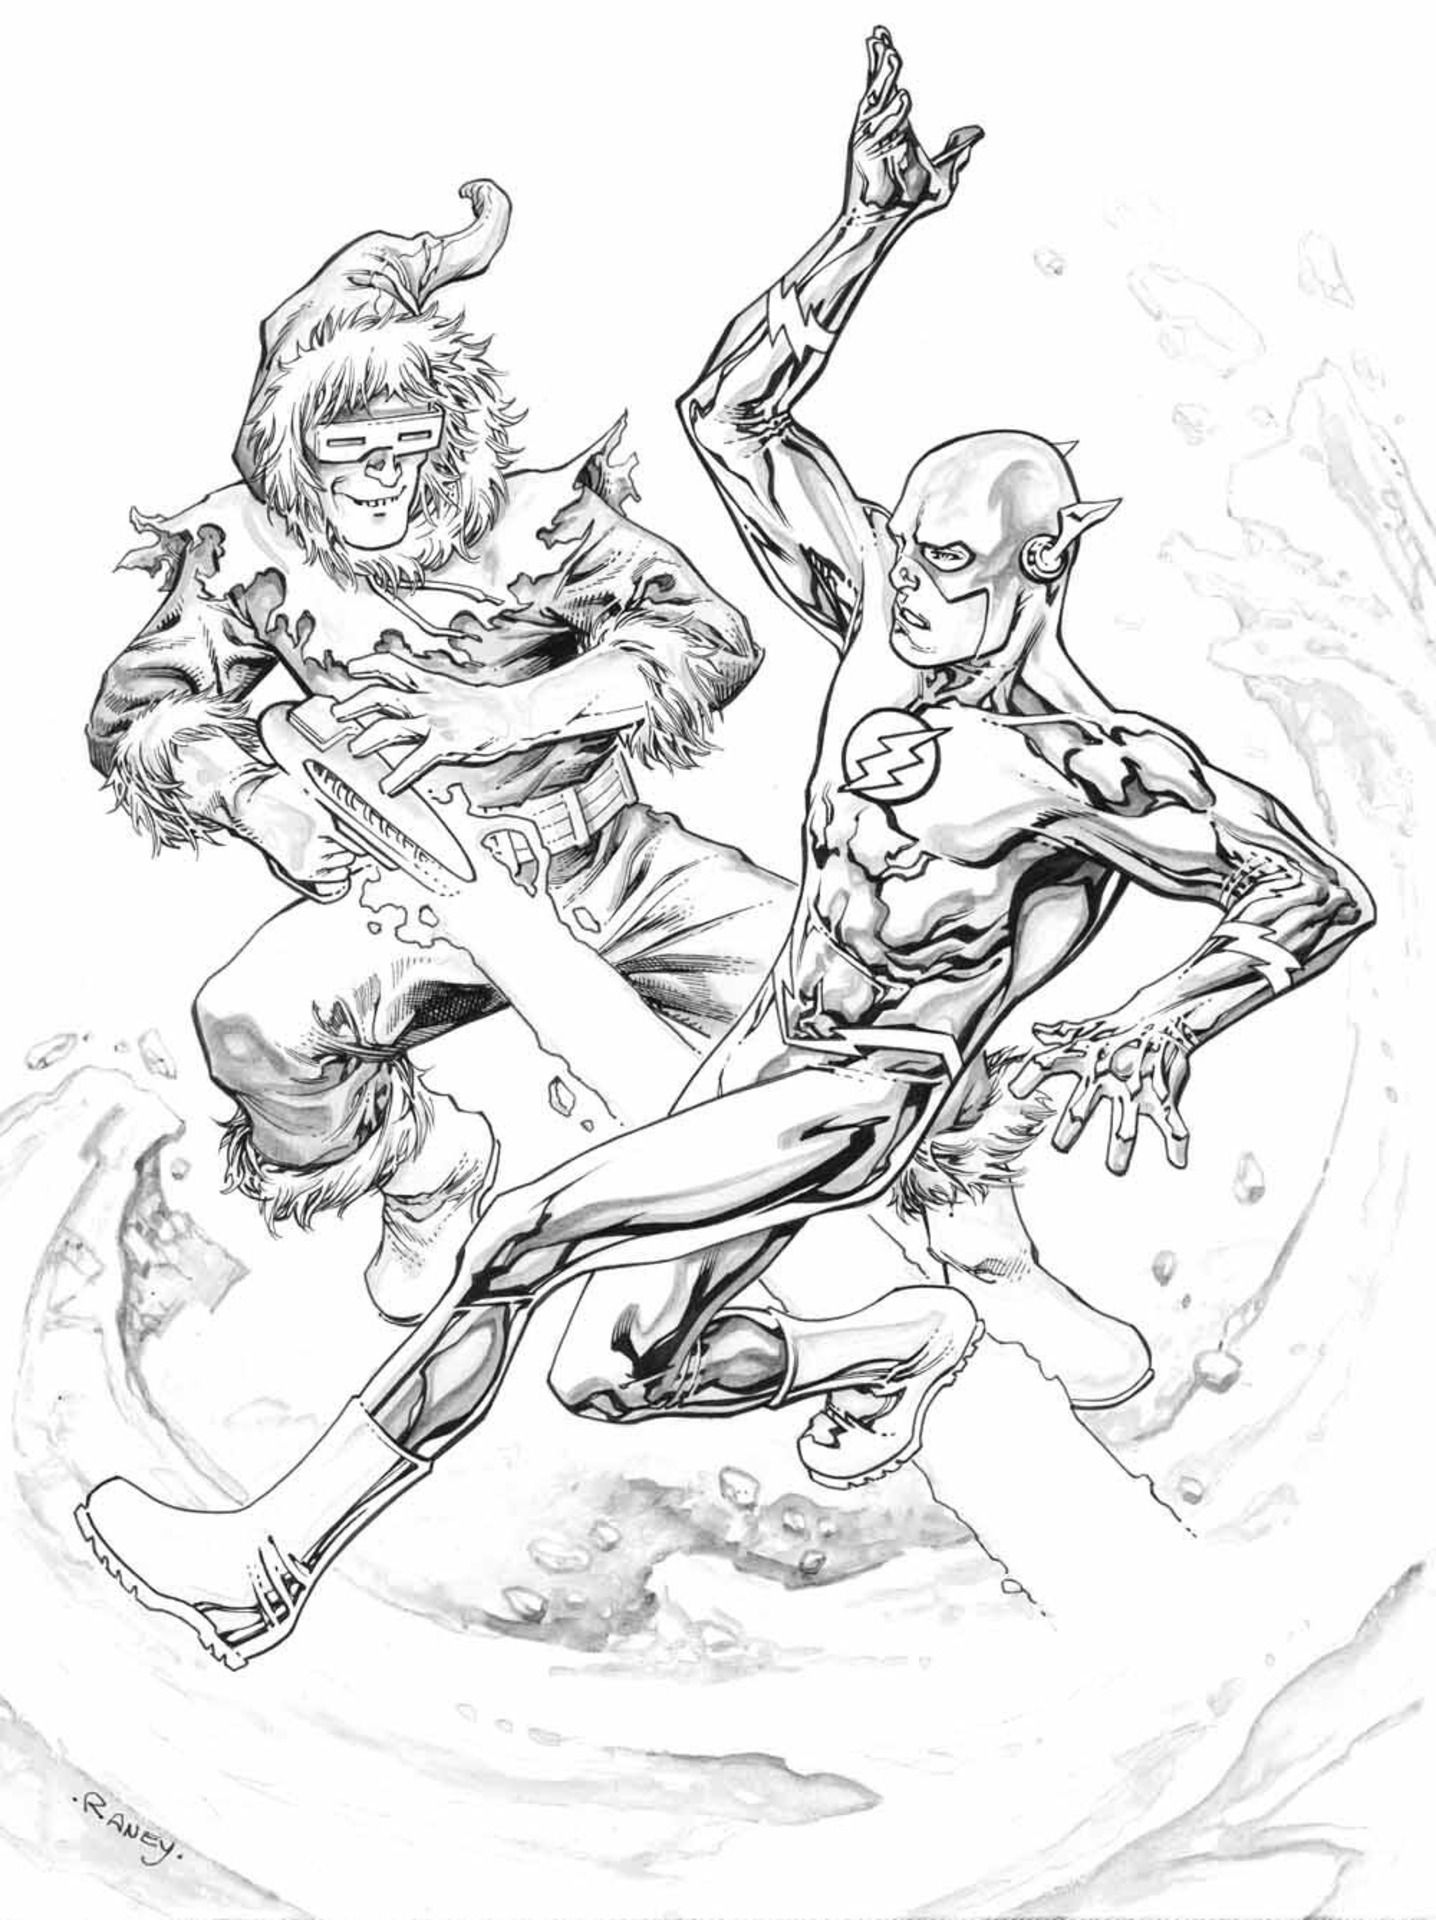 Awesome Art Picks Jawa Batwoman X Men And More Coloring Pages Superhero Coloring Pages Free Coloring Pages